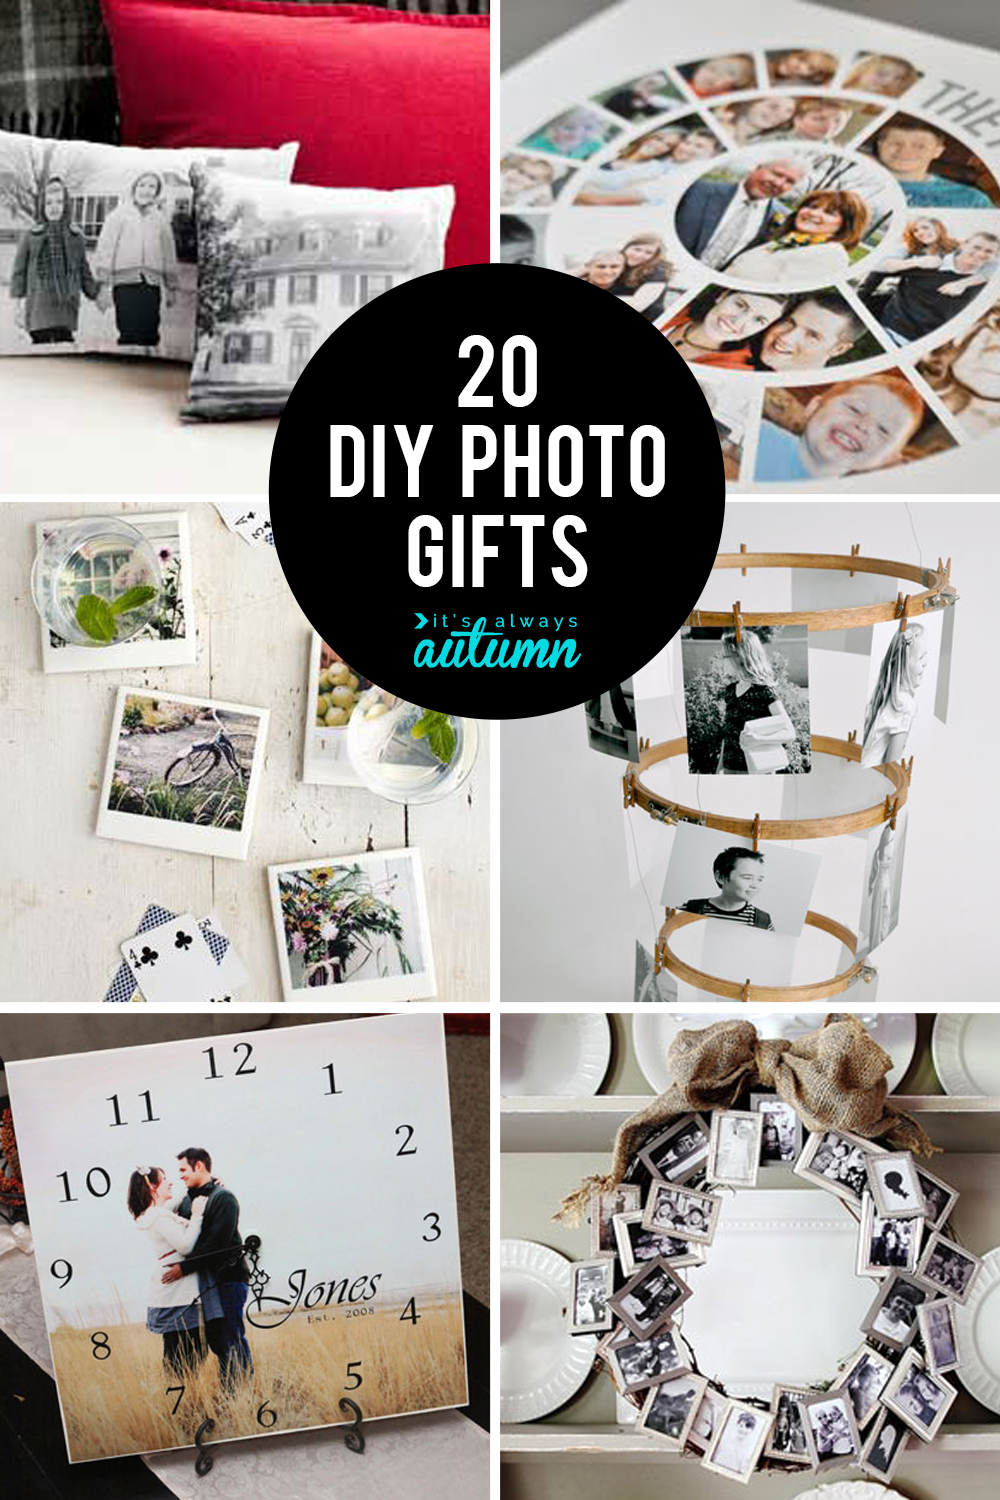 Awesome Diy Mother's Day Gifts 20 Fantastic Diy Photo Gifts Perfect For Mother S Day Or Grandparents